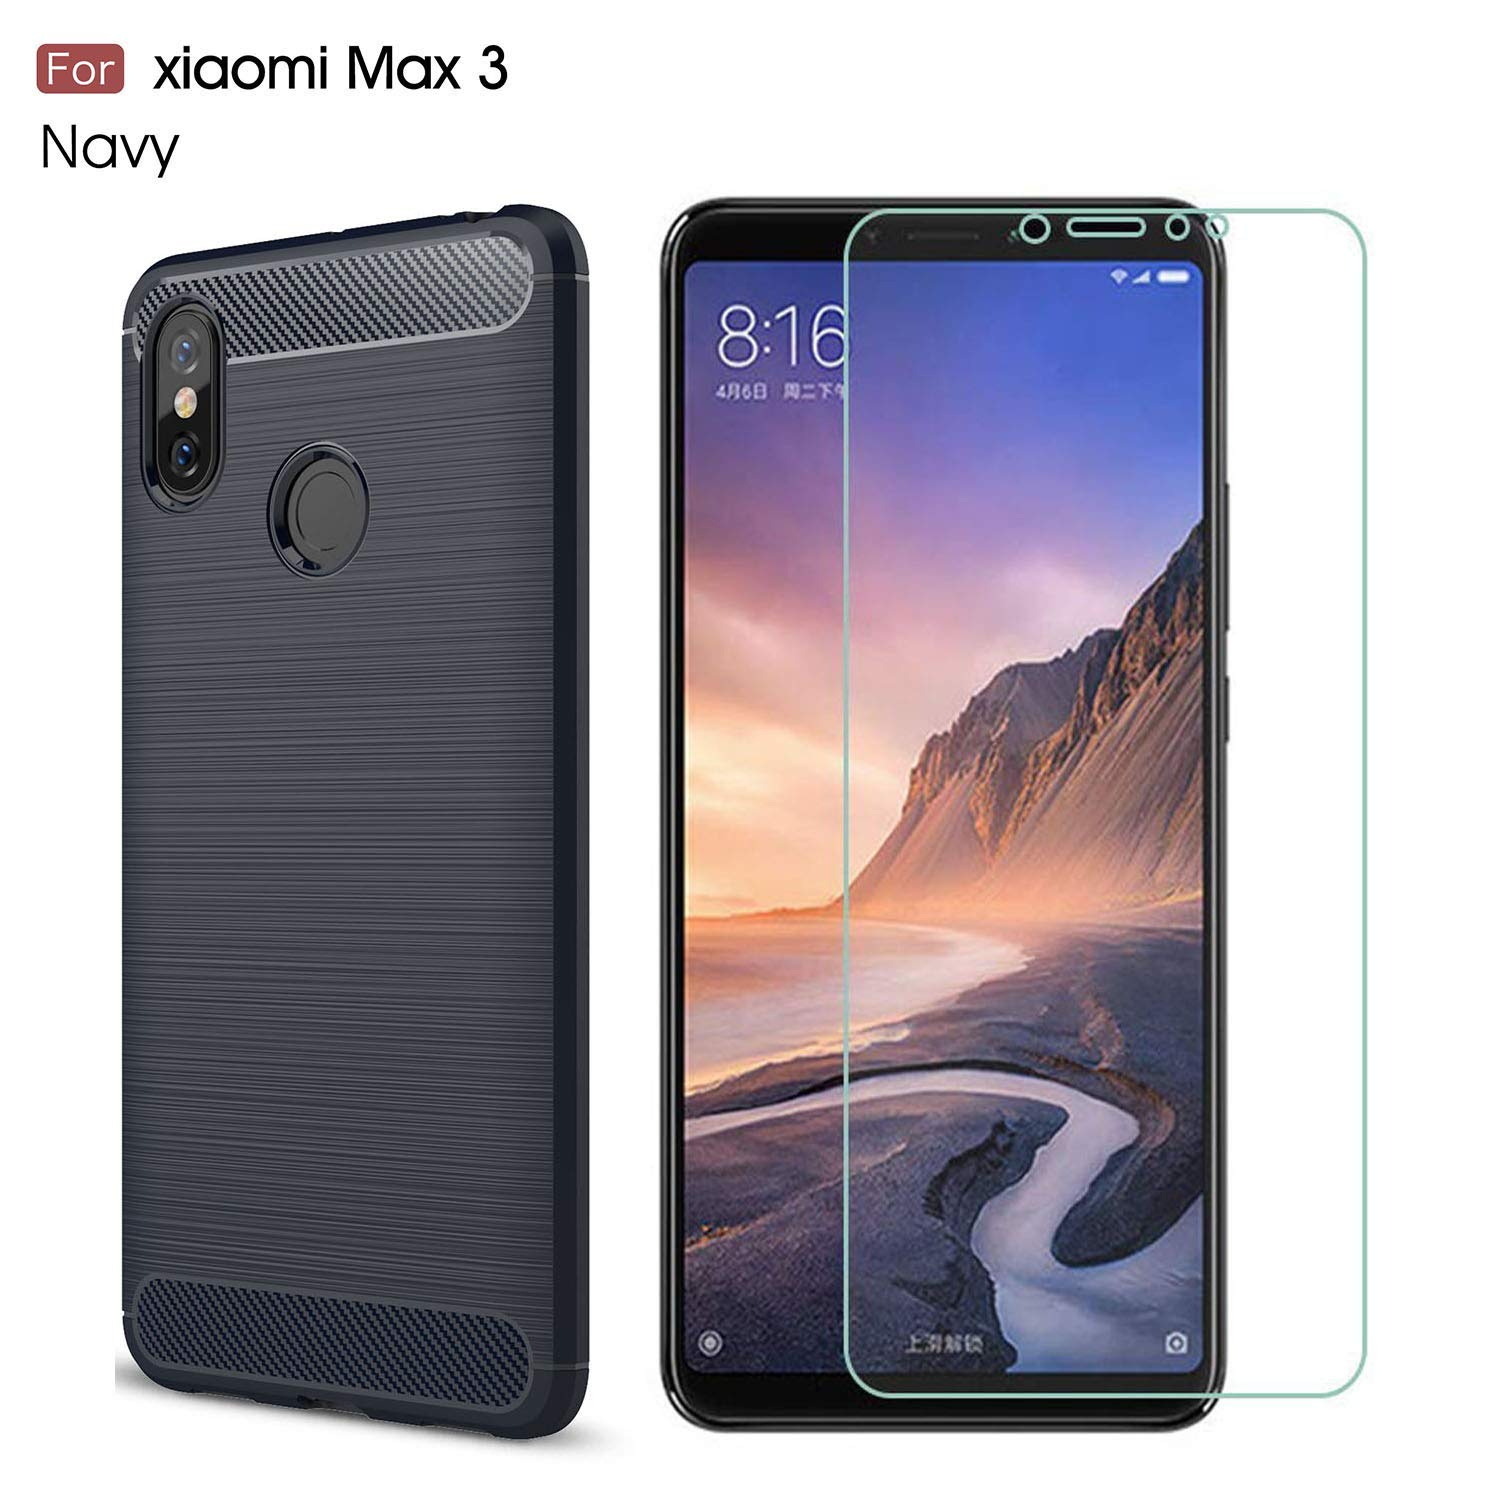 Green. Xiaomi Mi A1 case,MYLB Ultra Slim Lightweight Carbon Fiber Design Flexible Soft TPU Case Highstrength Shockproof Protective Back Cover to Protect The Mobile Phone for Xiaomi Mi A1